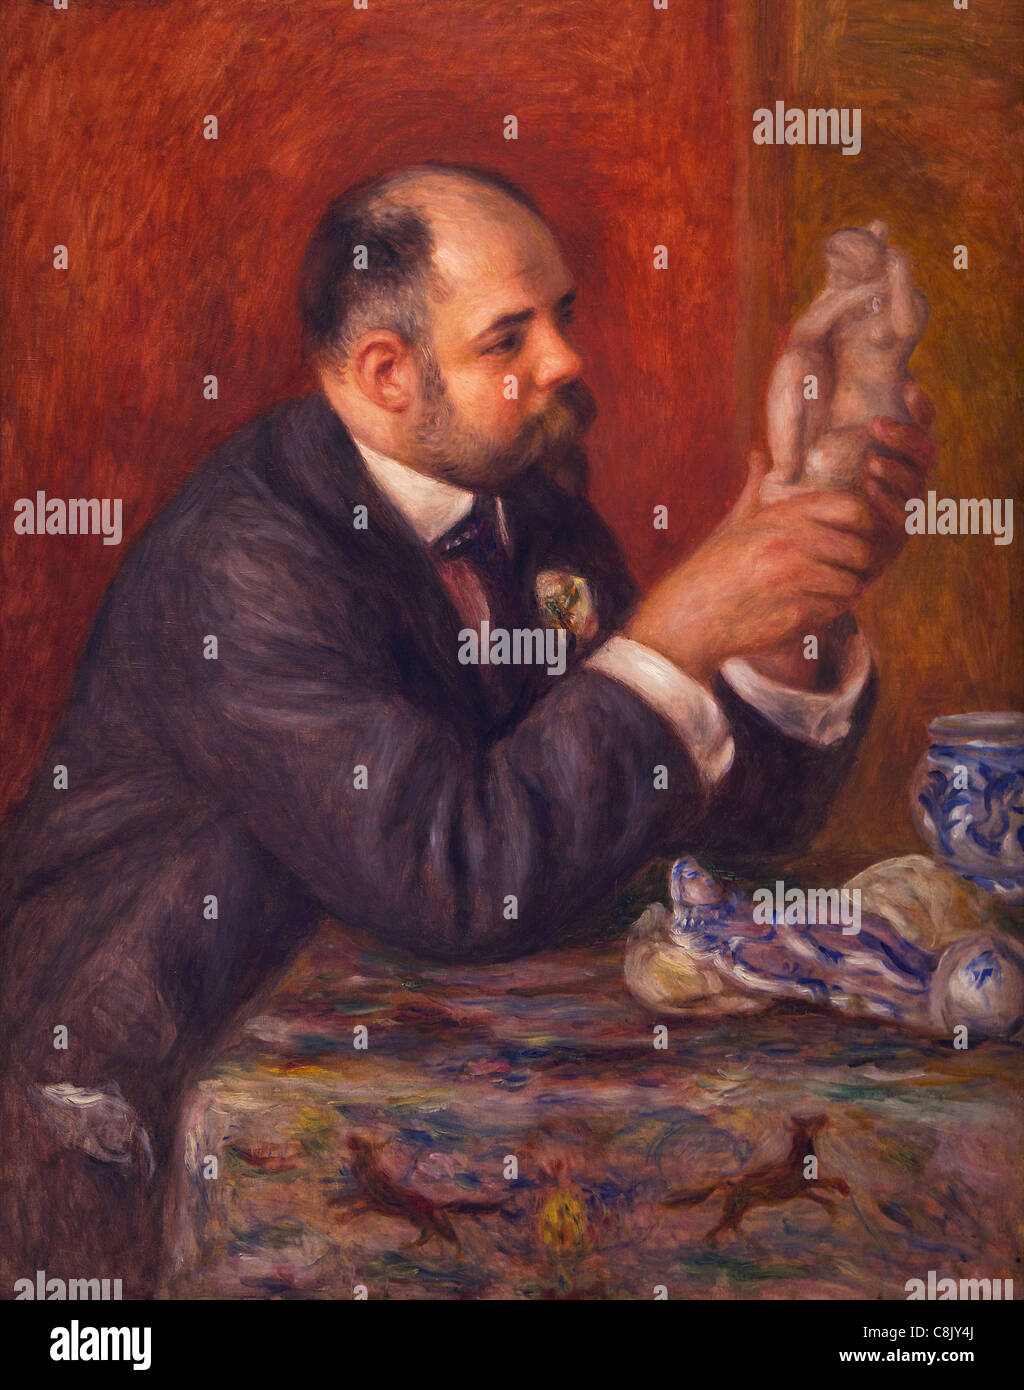 Portrait of Ambrose Vollard, by Pierre-Auguste Renoir, 1908, Courtauld Galleries, Somerset House, London, England, - Stock Image